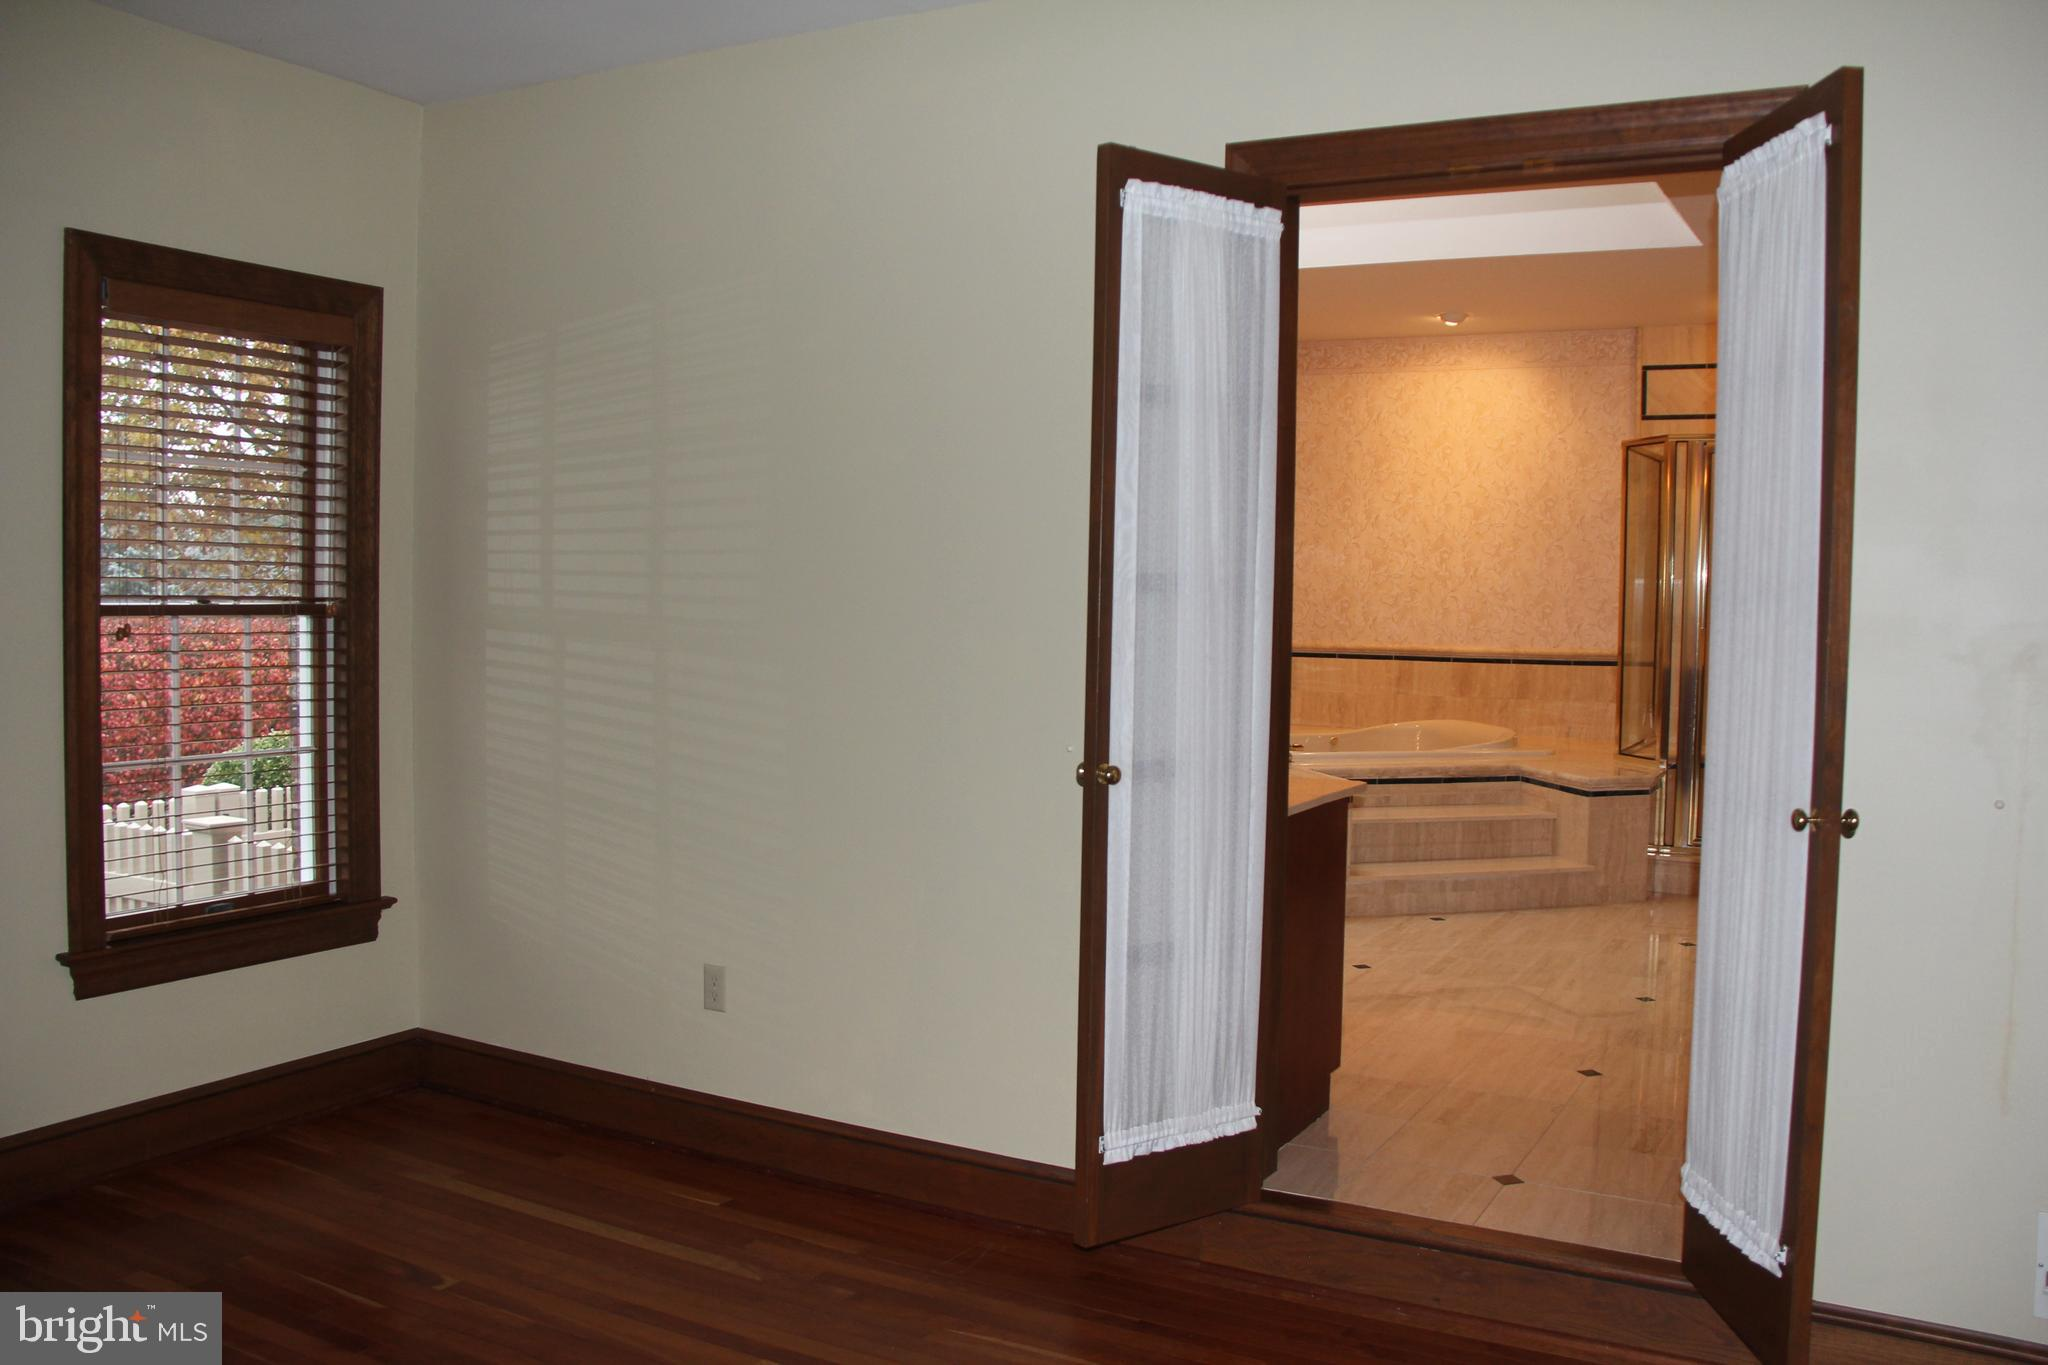 Looking into the Master Bath Room